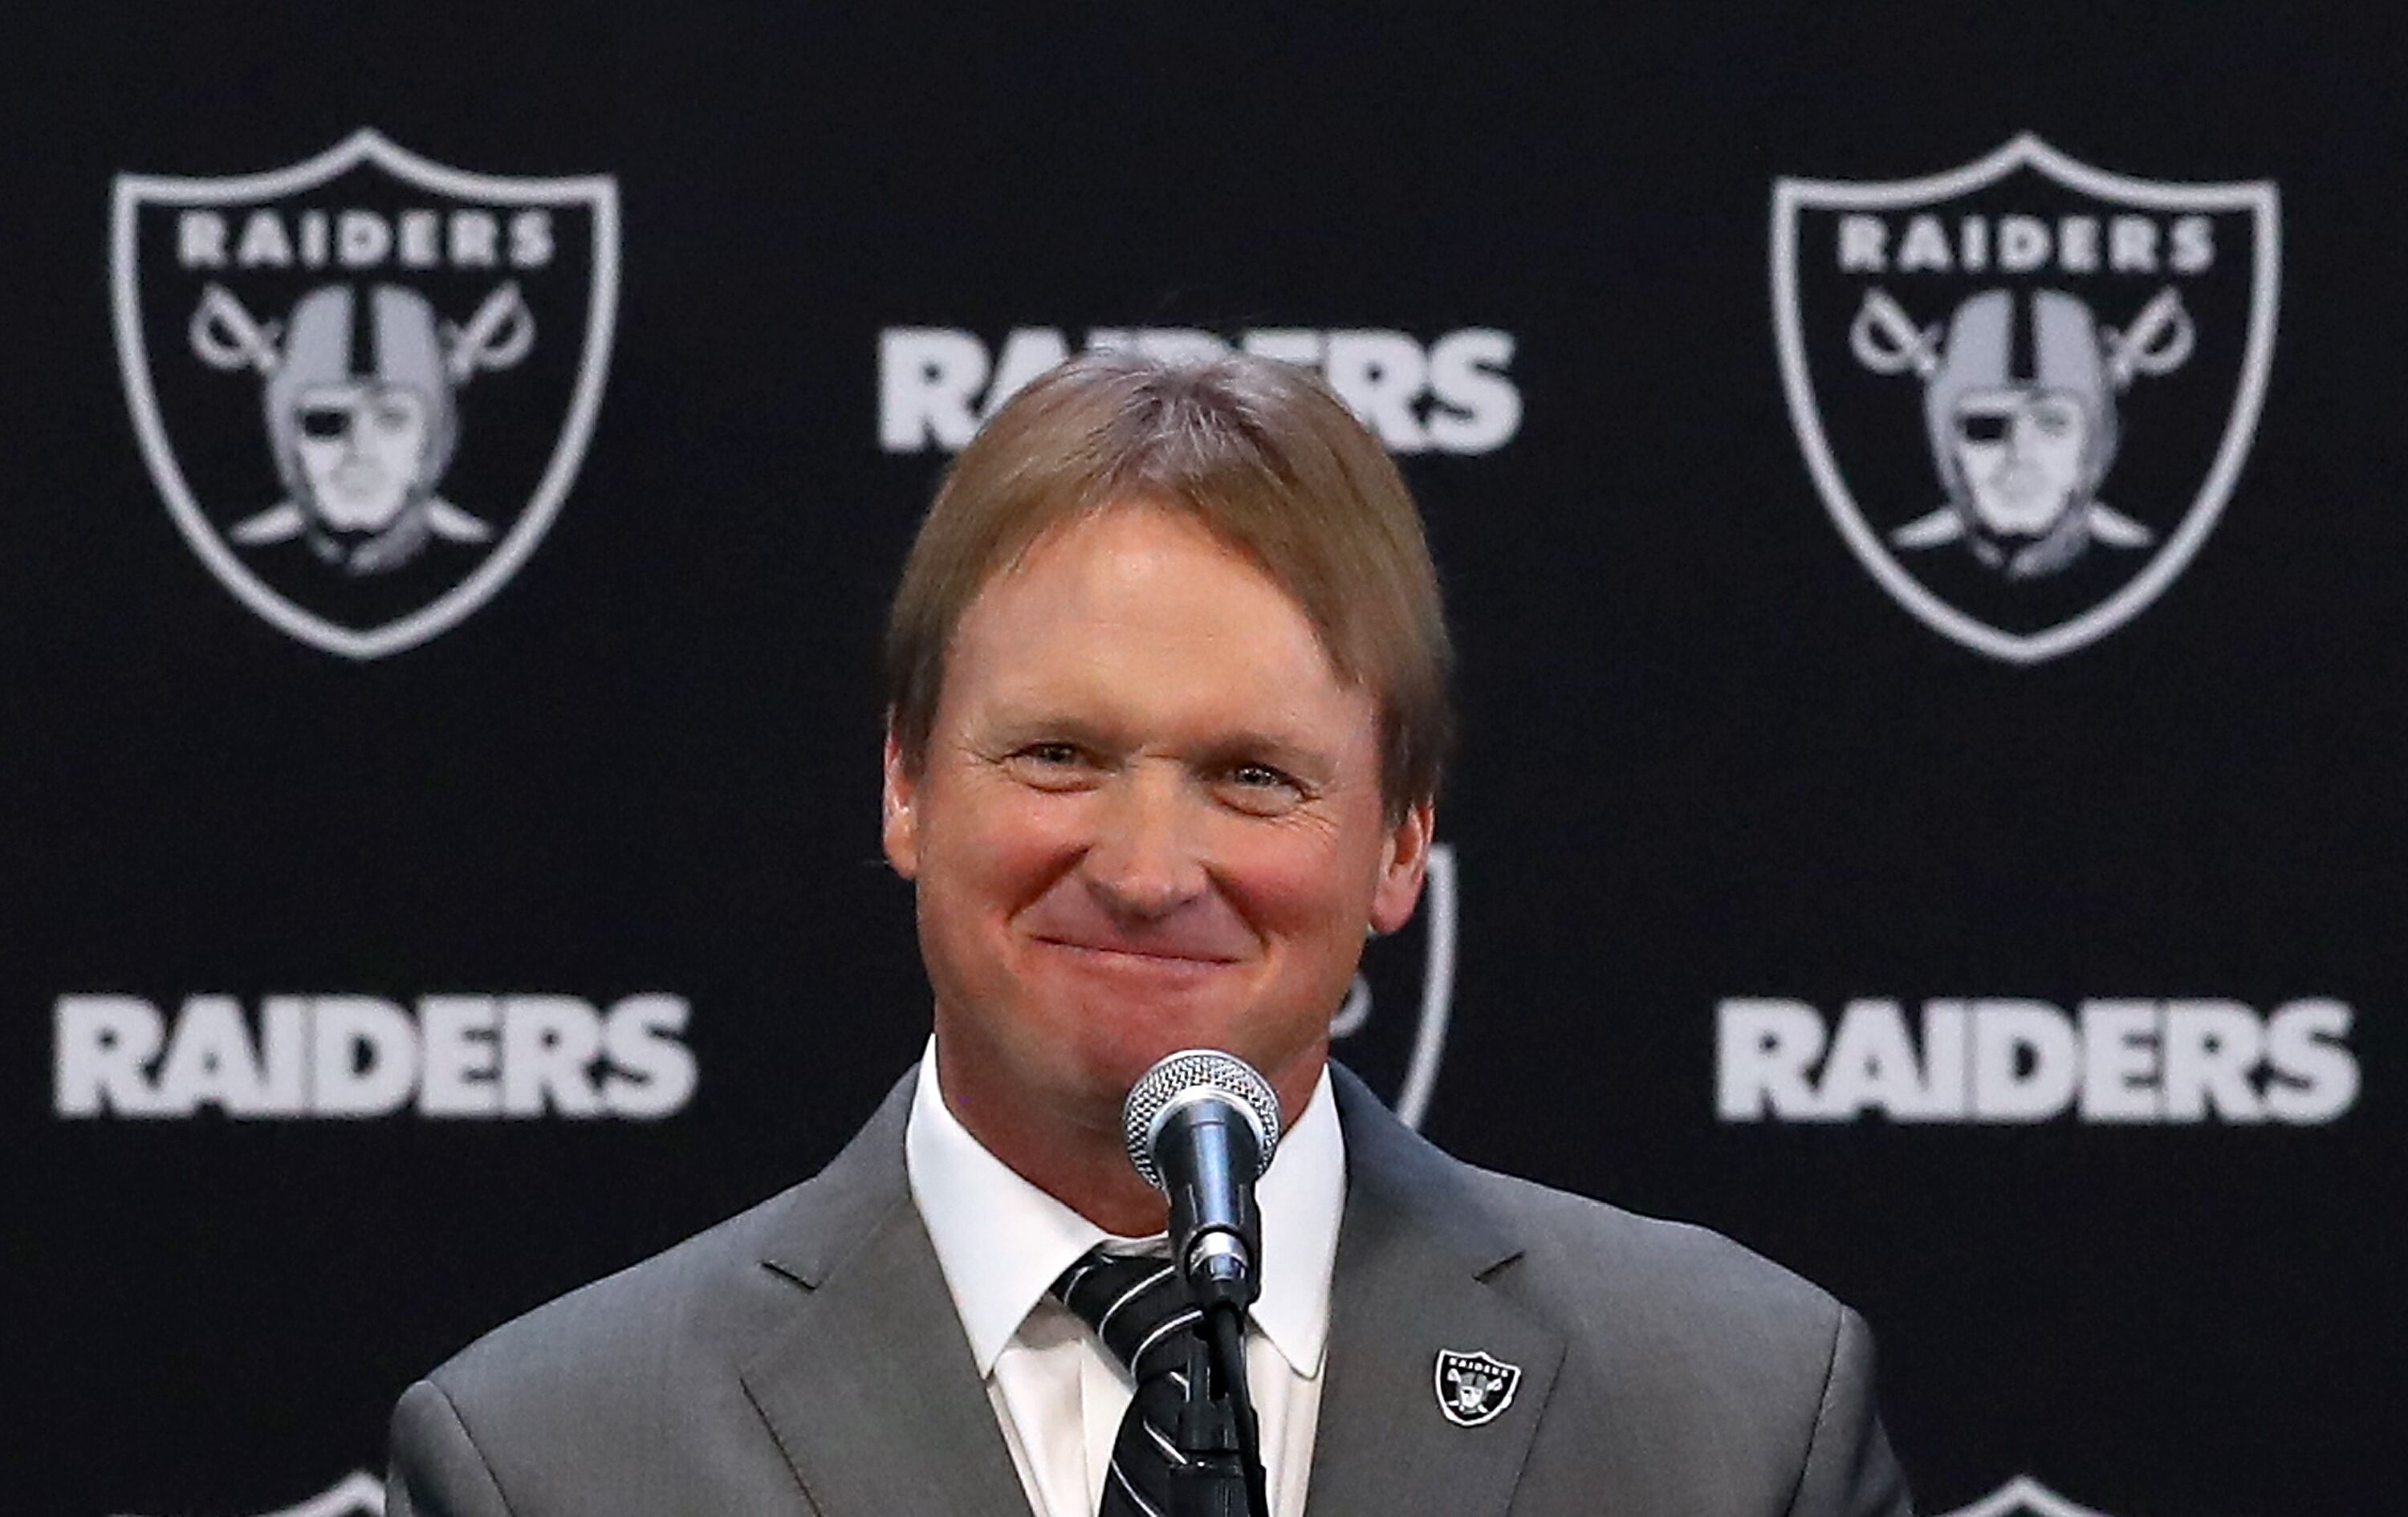 903070686-oakland-raiders-introduce-jon-gruden.jpg